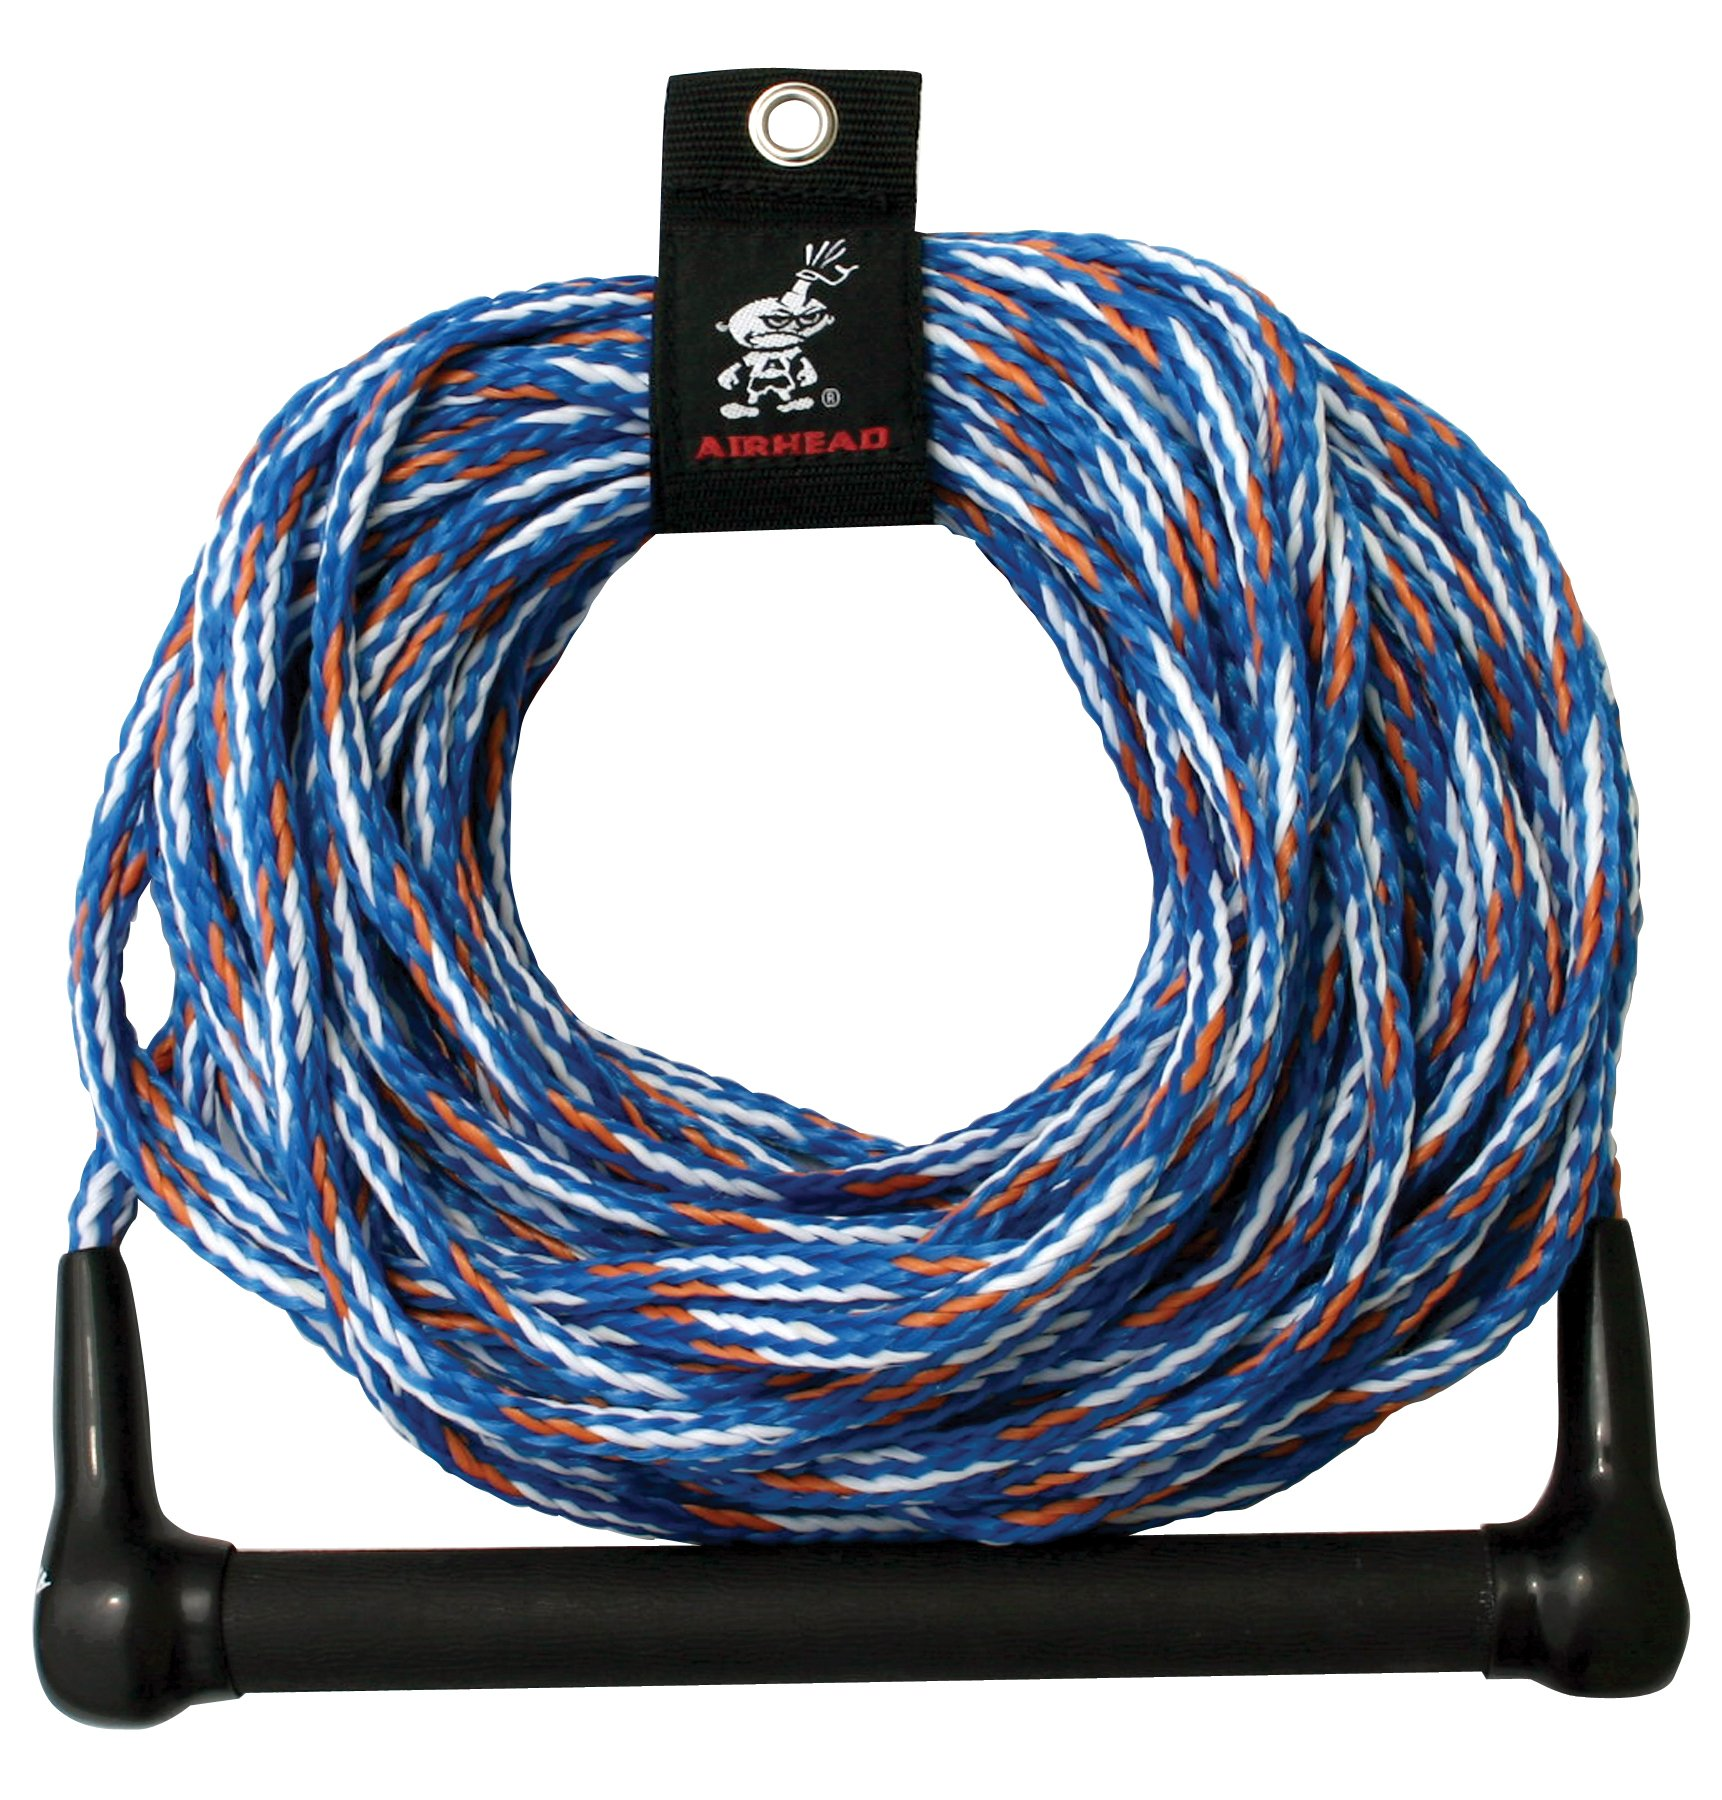 AIRHEAD 1 Section Water Ski Rope by Airhead (Image #1)